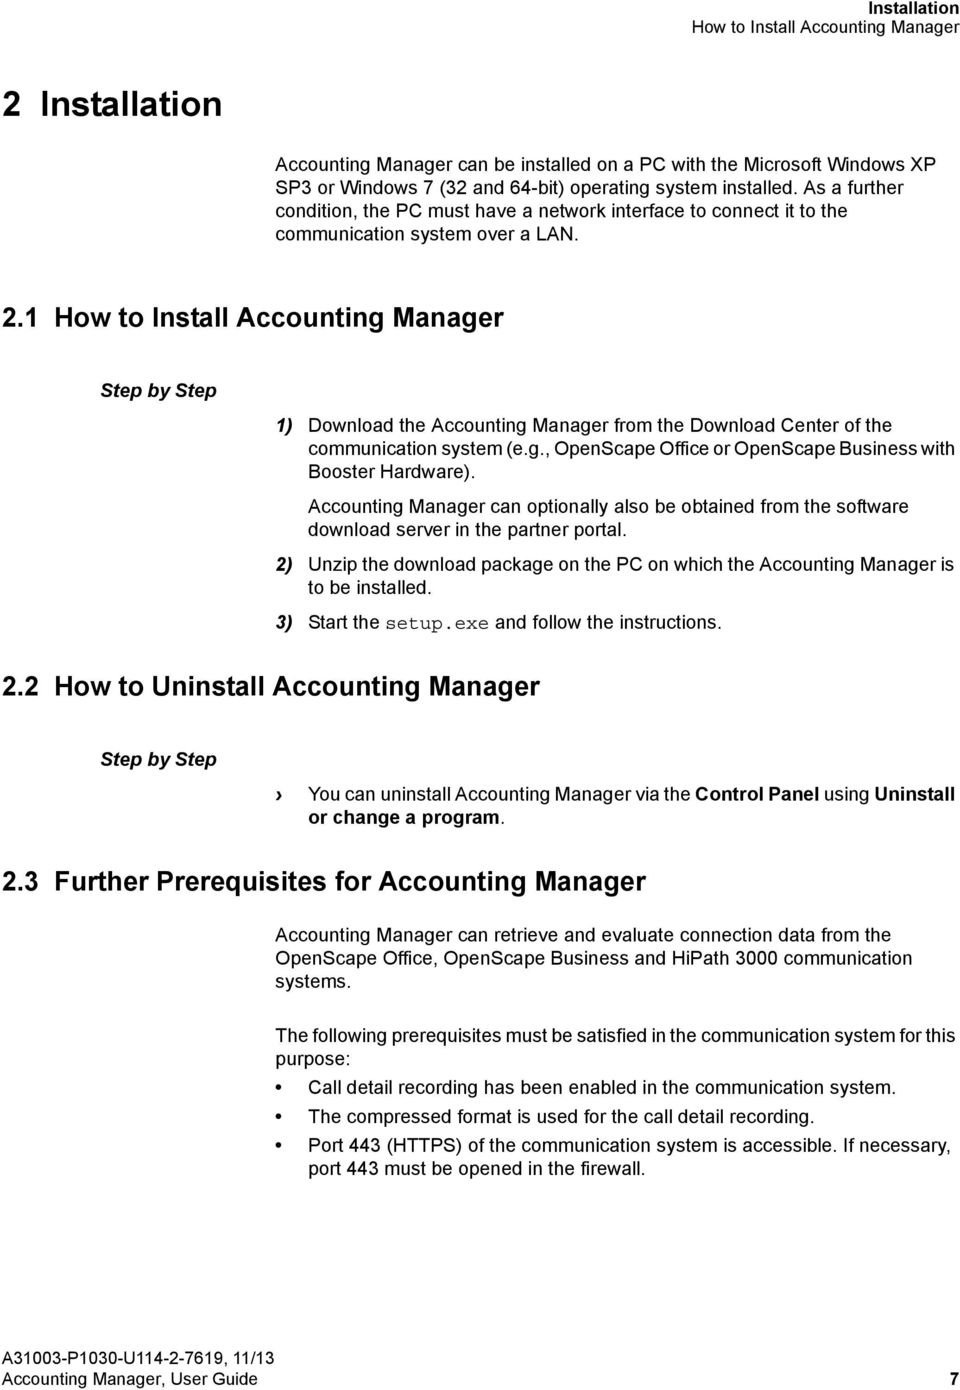 1 How to Install Accounting Manager 1) Download the Accounting Manager from the Download Center of the communication system (e.g., OpenScape Office or OpenScape Business with Booster Hardware).